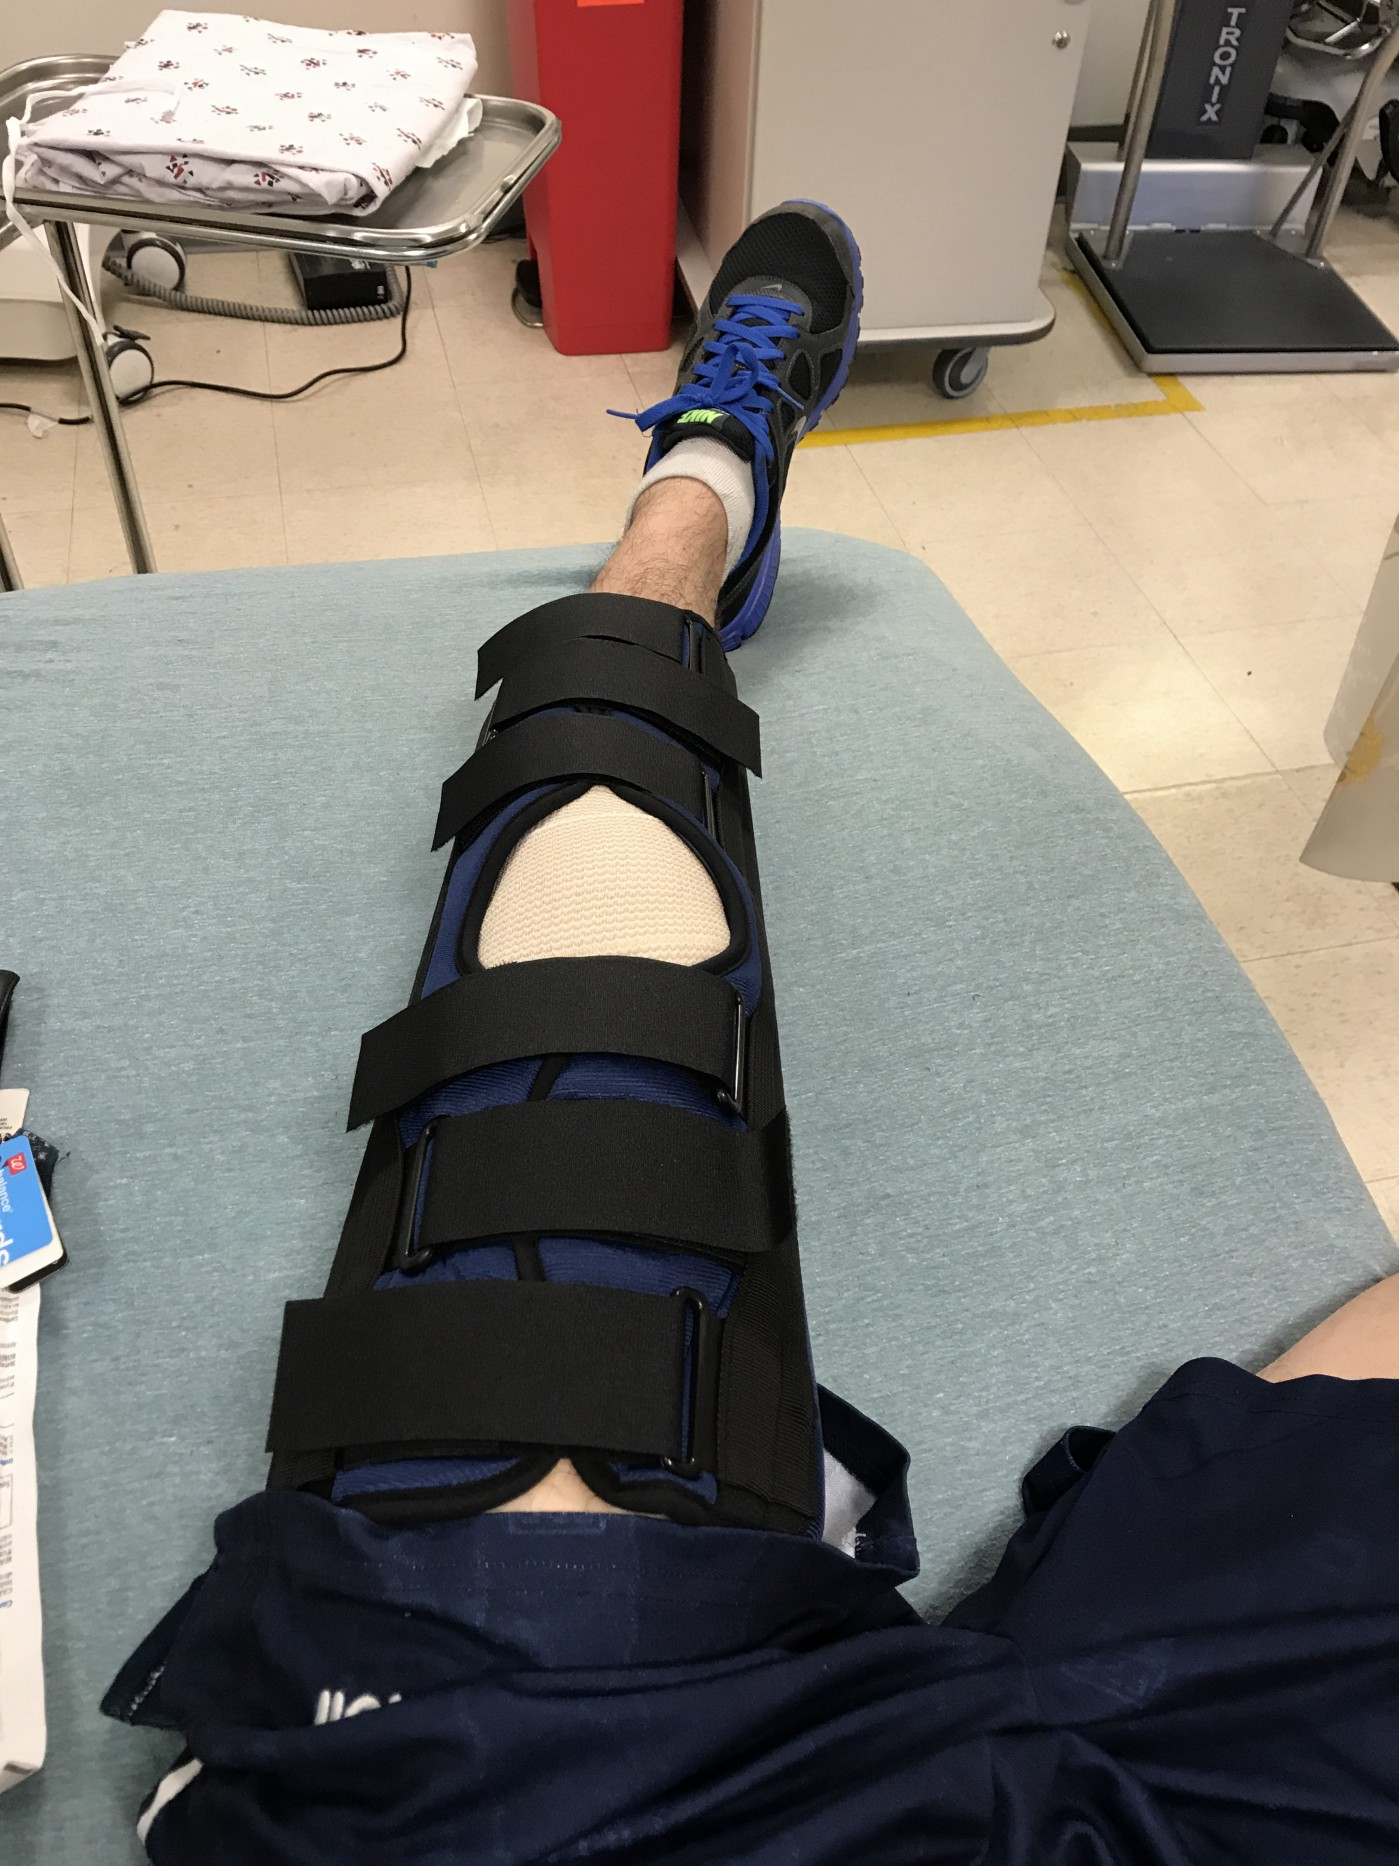 Picture of my perfectly healthy knee with a strange device around it.